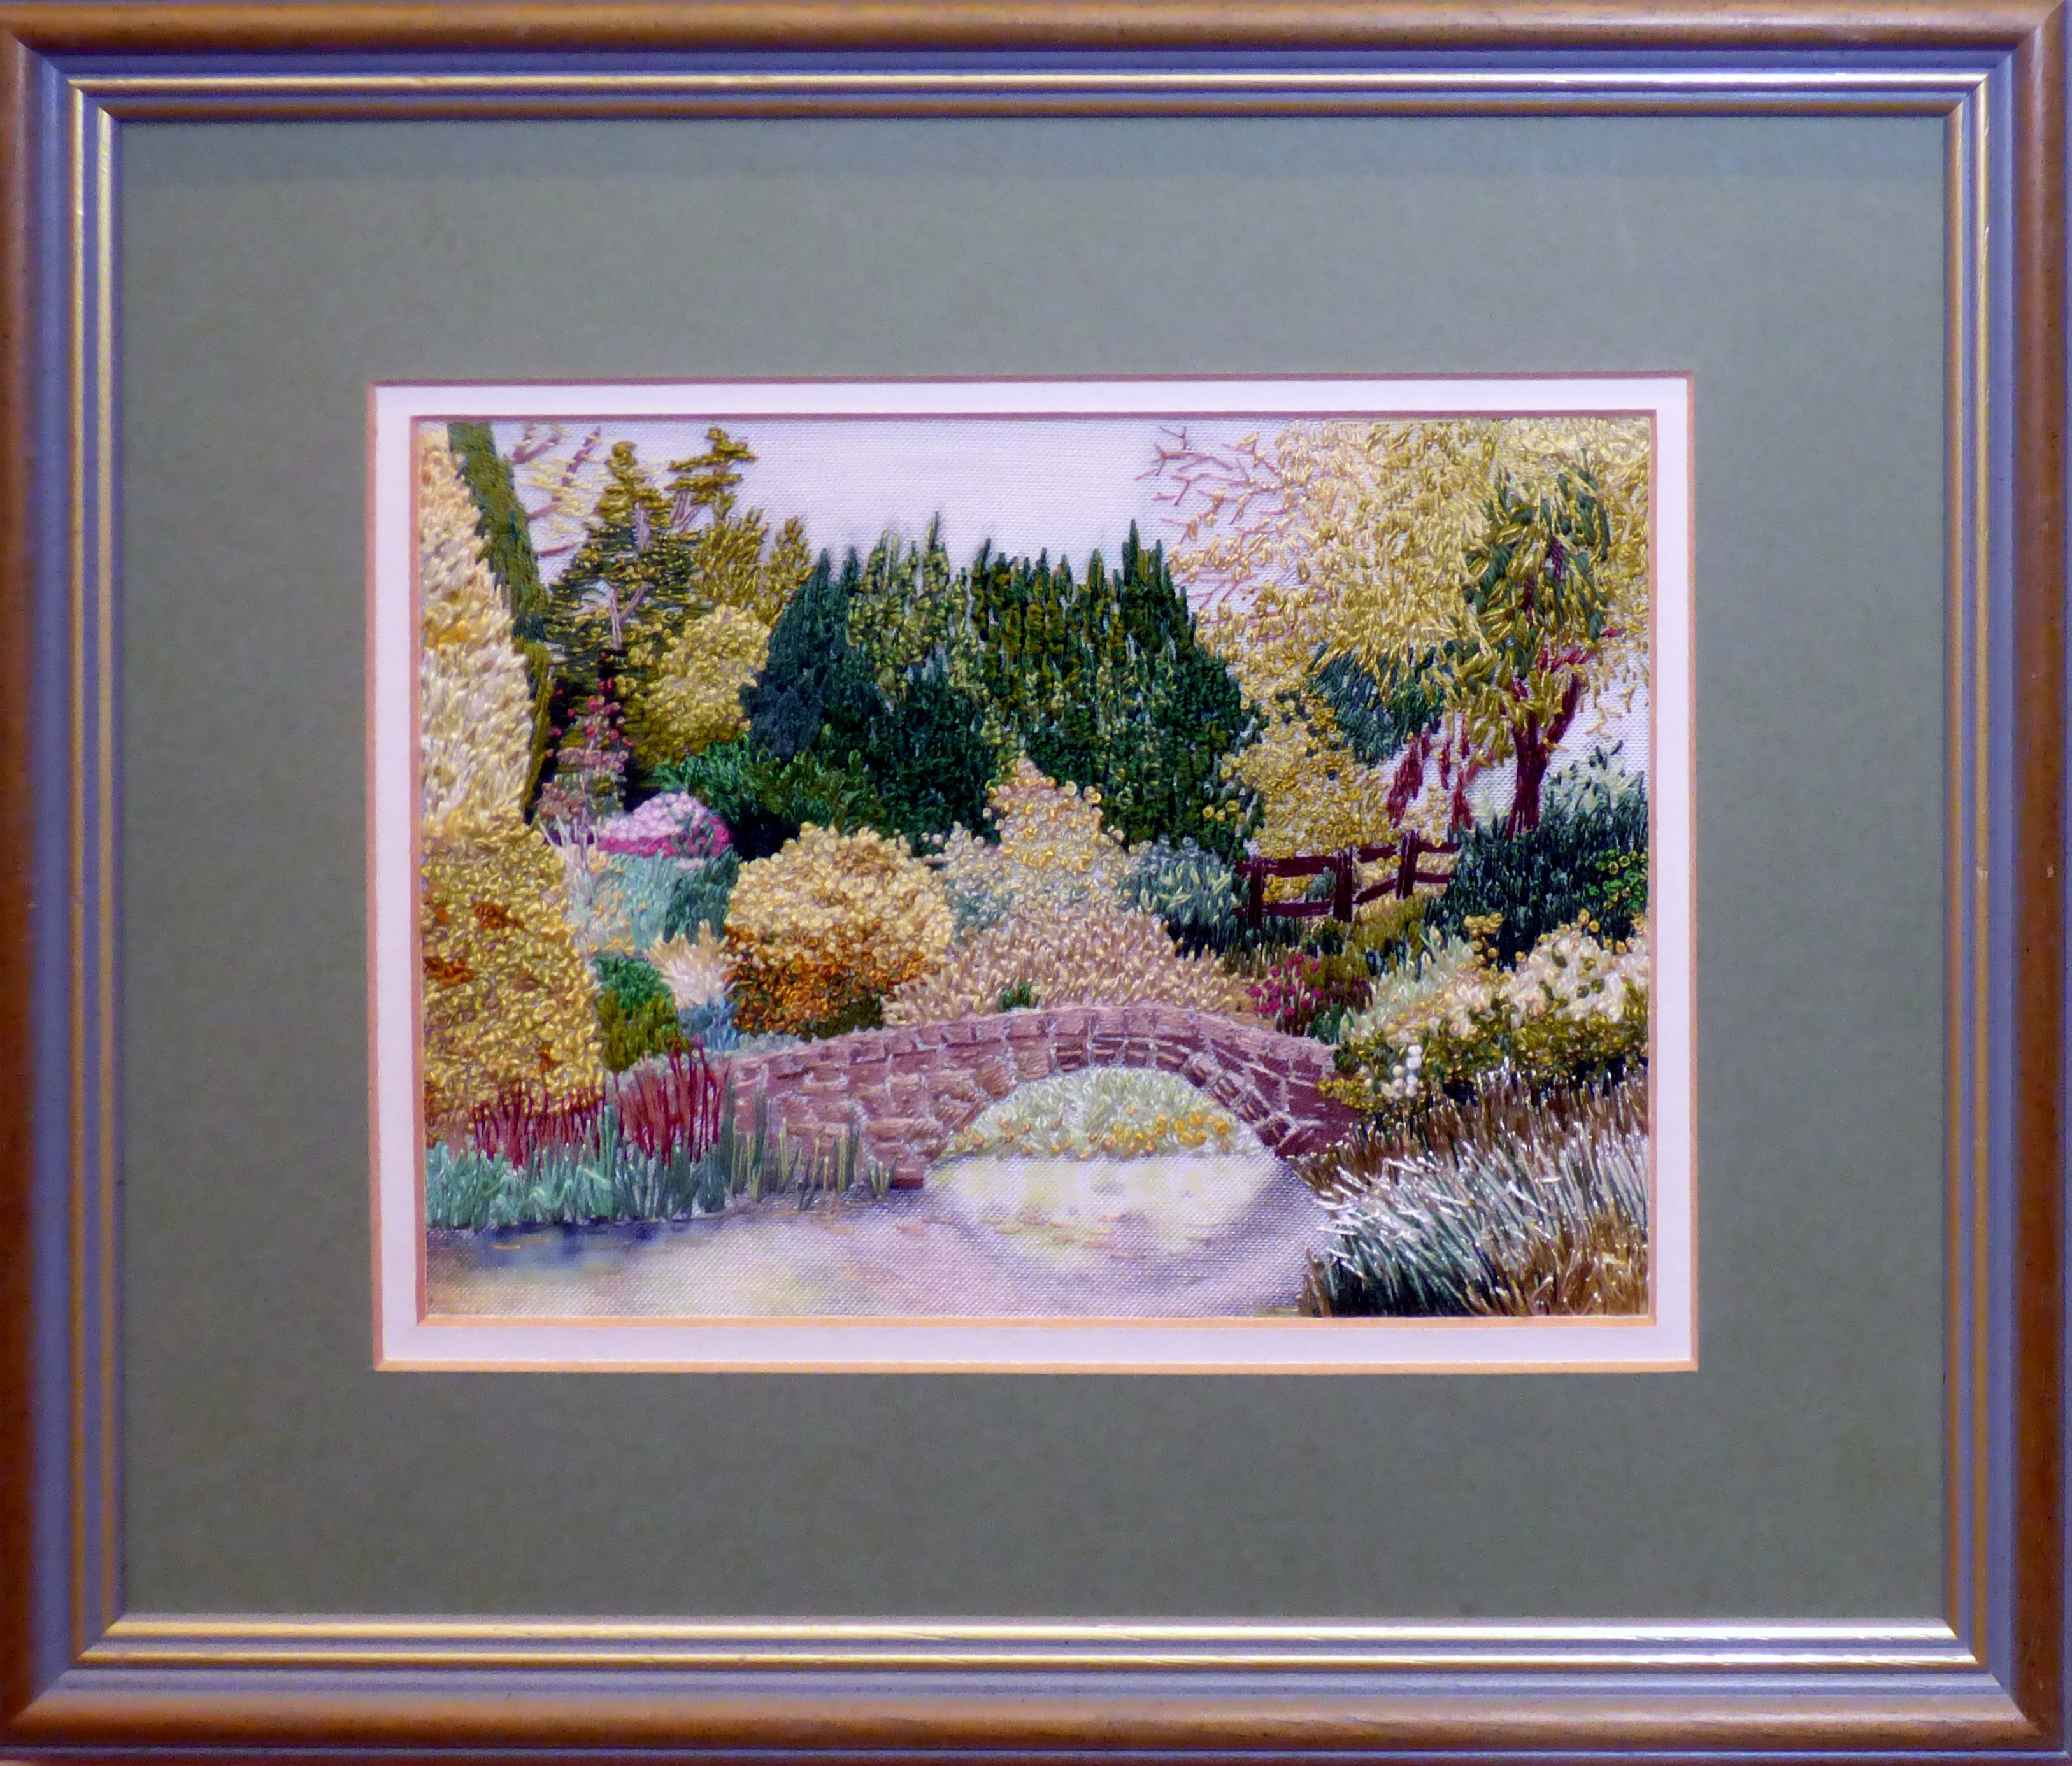 THE POND IN THE ROCK GARDEN AT NESS GARDENS by Gill McKaigue, painting and hand stitching